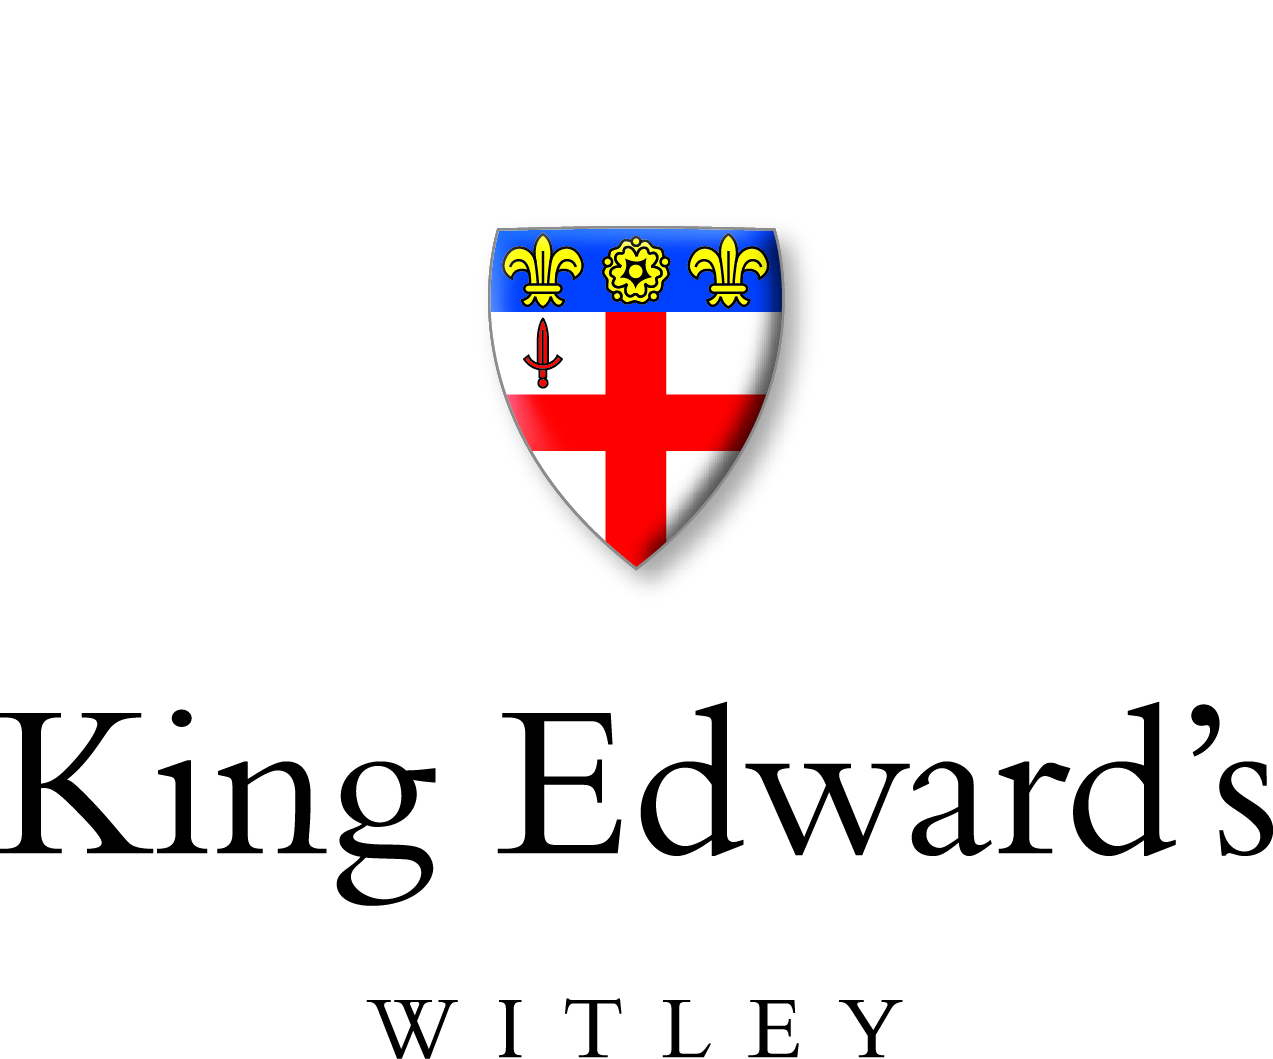 King Edward's Witley, Godalming, Surrey, England | Dickinson | British Boarding School Consulting